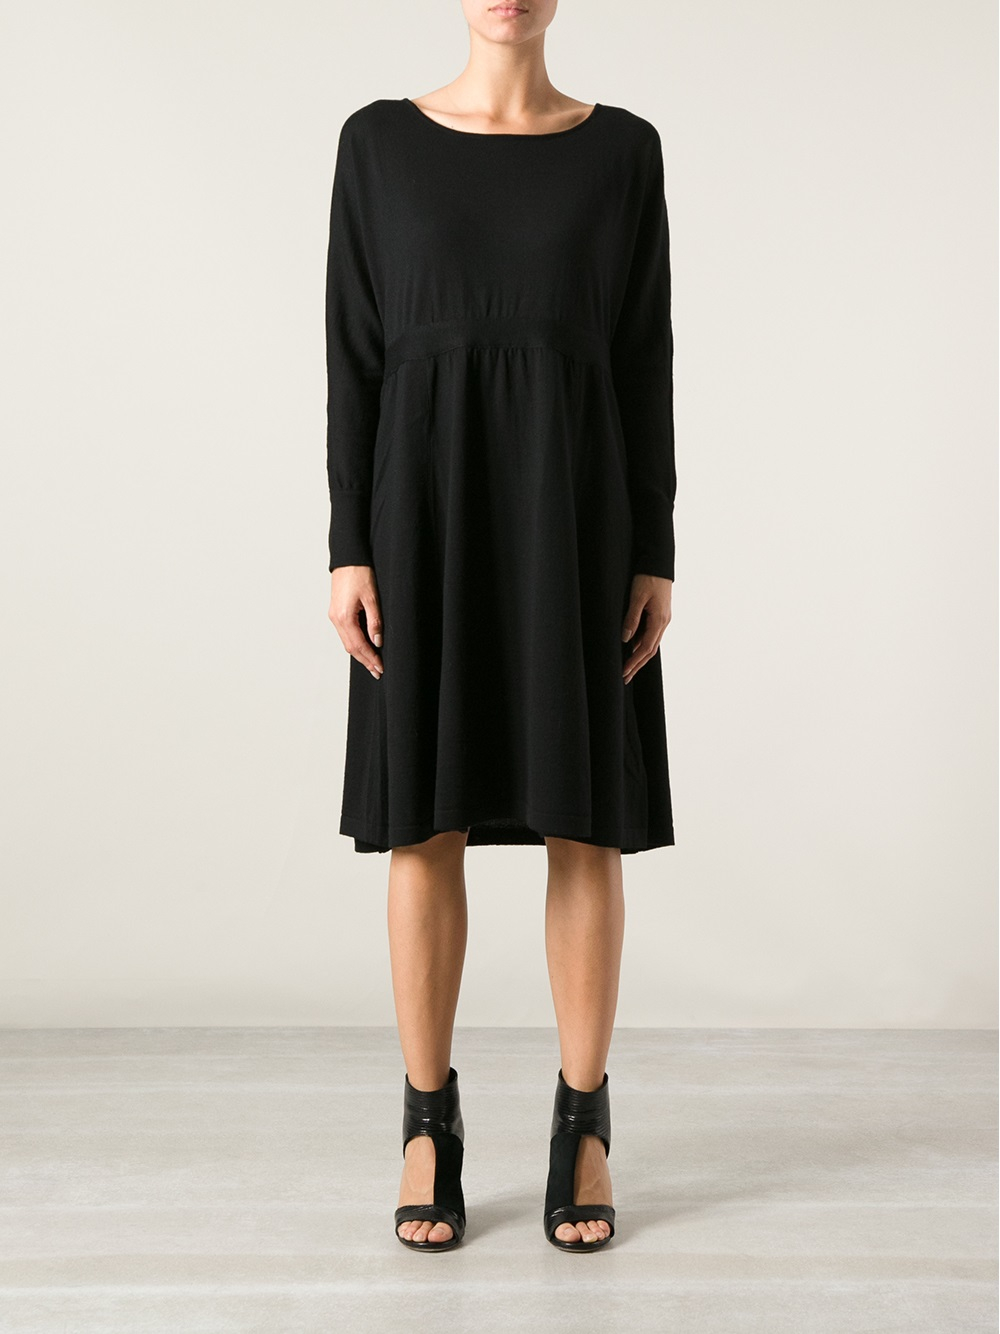 lyst societe anonyme loose fit sweater dress in black